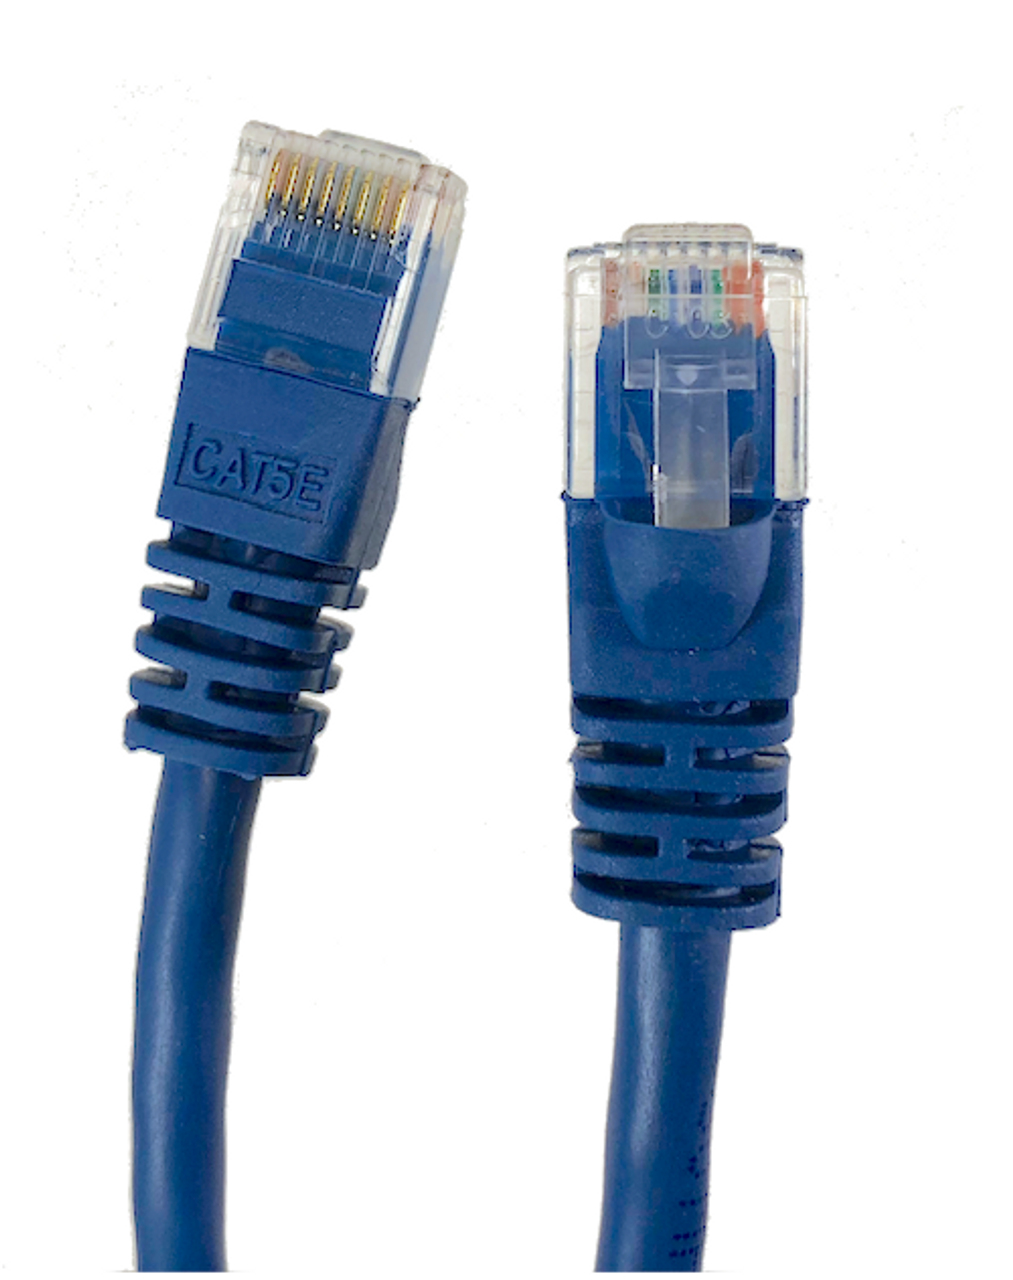 Category 5E UTP RJ45 Patch Cable Blue - 14 ft